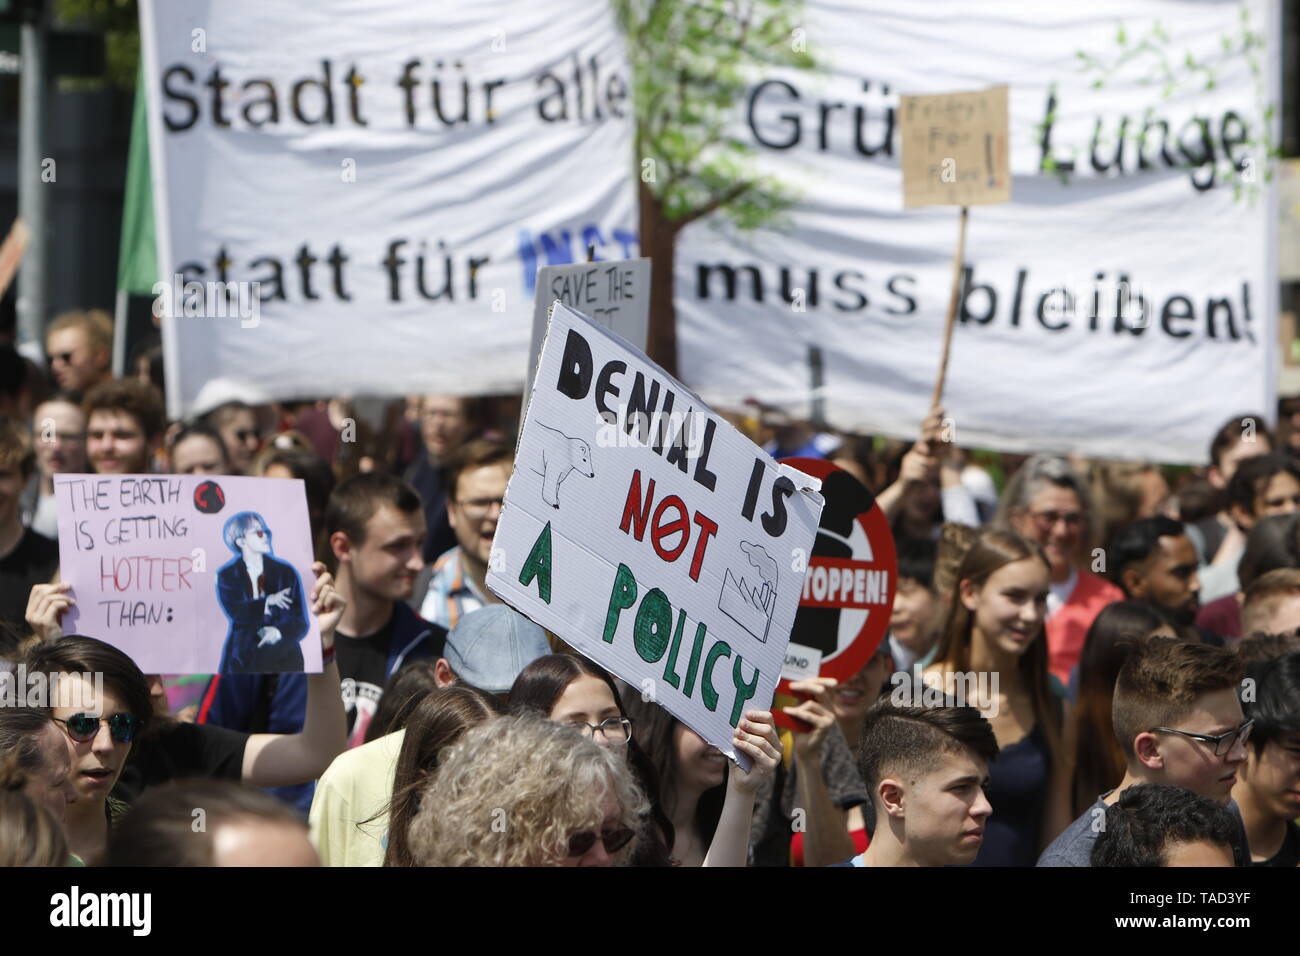 Frankfurt, Germany. 24th May 2019. A protester carries a sign that reads 'Denial is not a Policy' with a drawing of a polar bear. Around 4,500 young people marched through Frankfurt to the European Central Bank, to protest against the climate change and for the introduction of measurements against it. The protest took place as part of an Europe wide climate strike, two days ahead of the 2019 European elections. - Stock Image